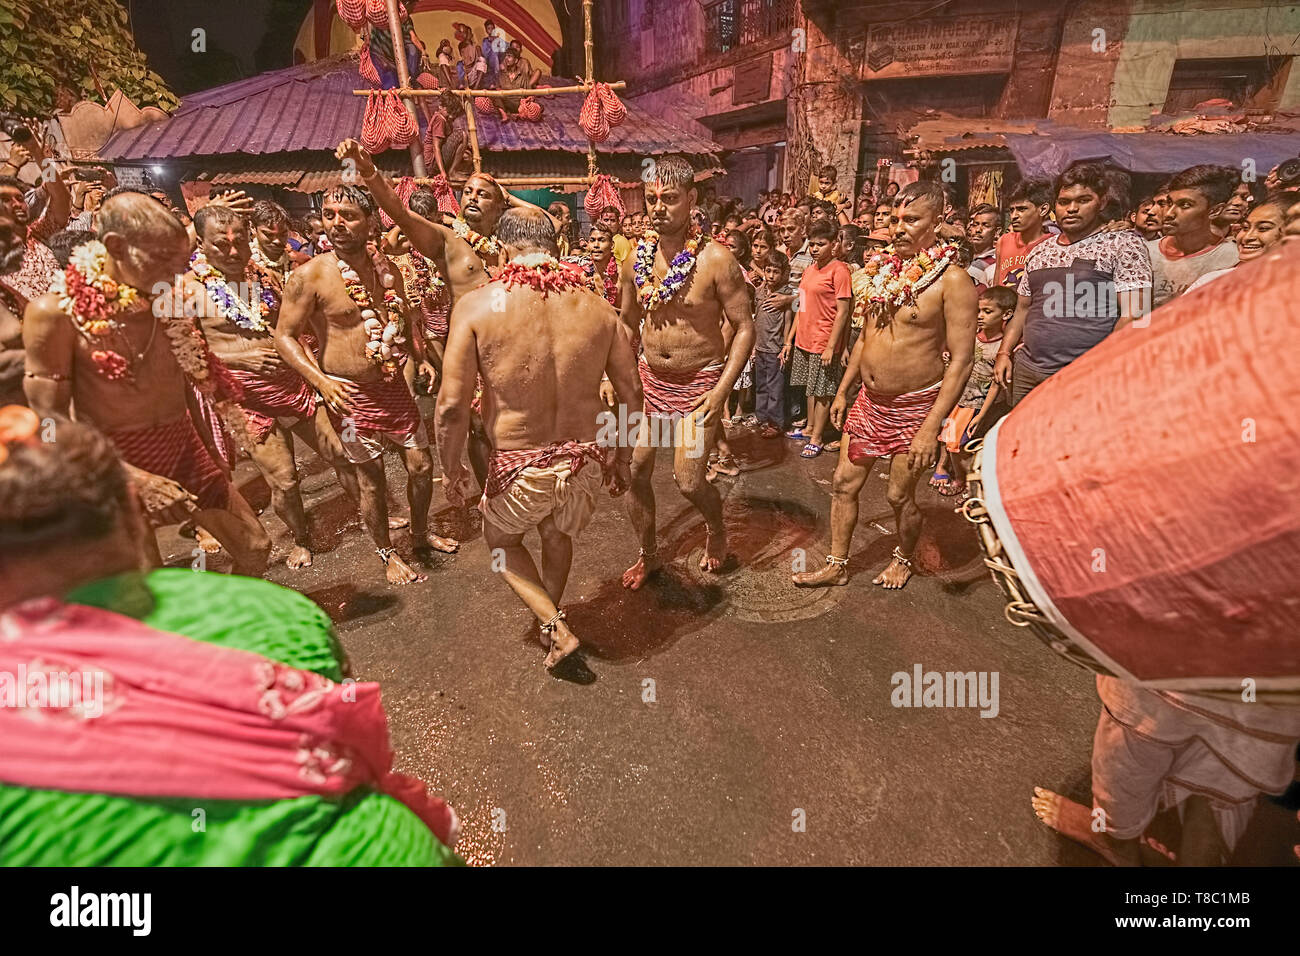 God,Lord,Shiva,male ,mendicants,strating ,year end,bare body,garlanded,dance - Stock Image